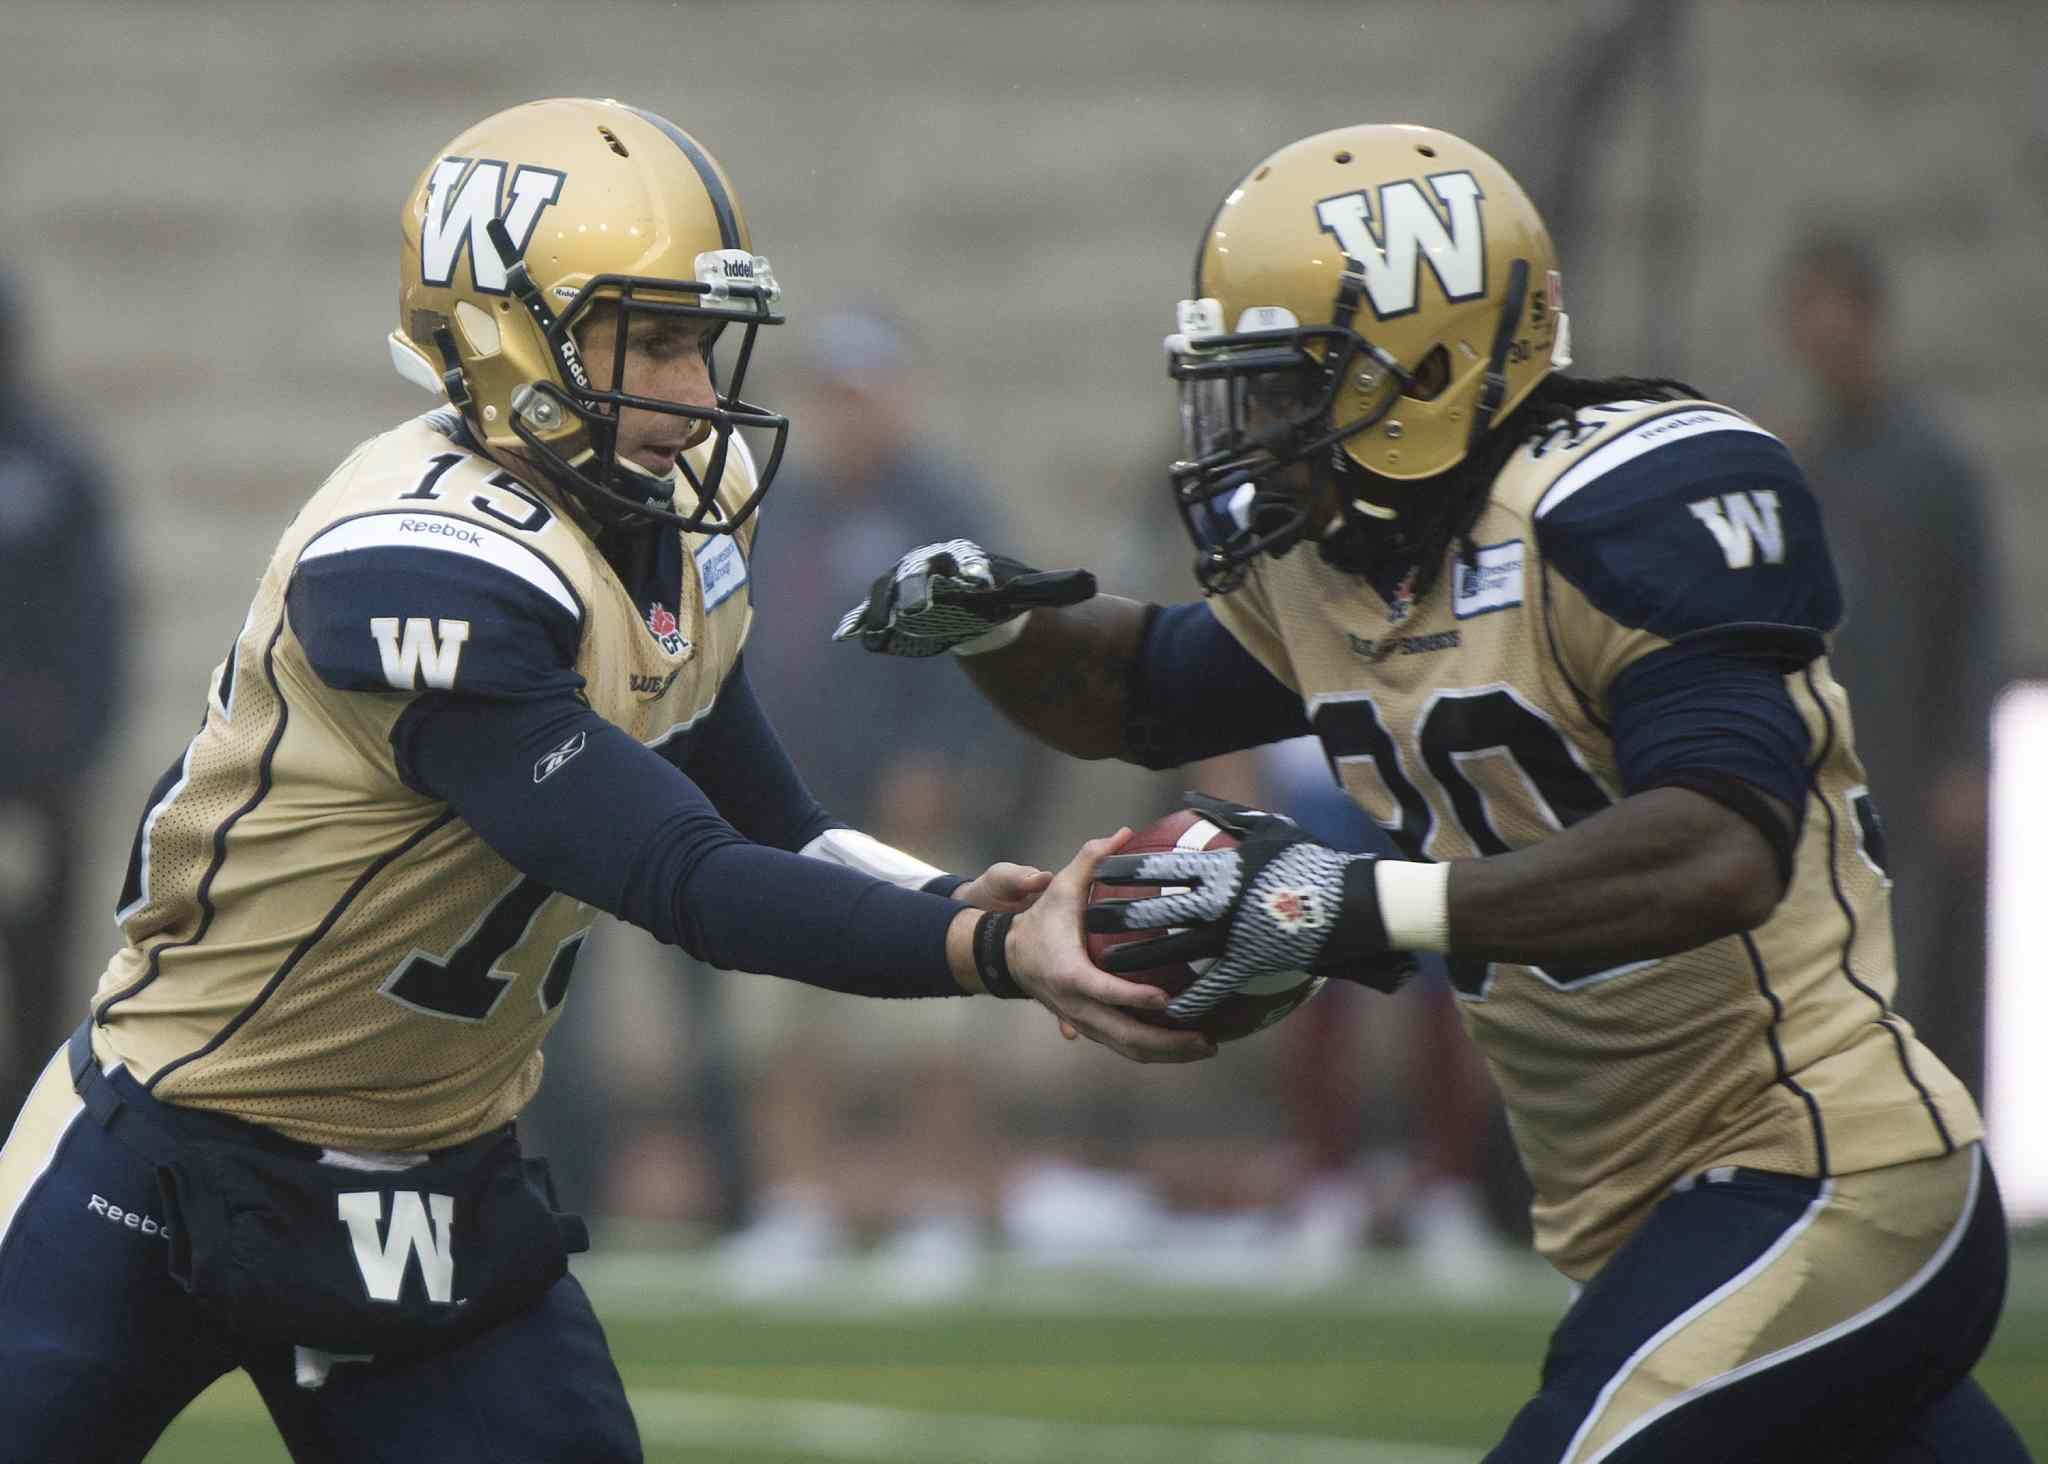 Blue Bombers quarterback Max Hall hands off to Will Ford on Monday. Hall and the offence put up 309 yards, their best total in months.